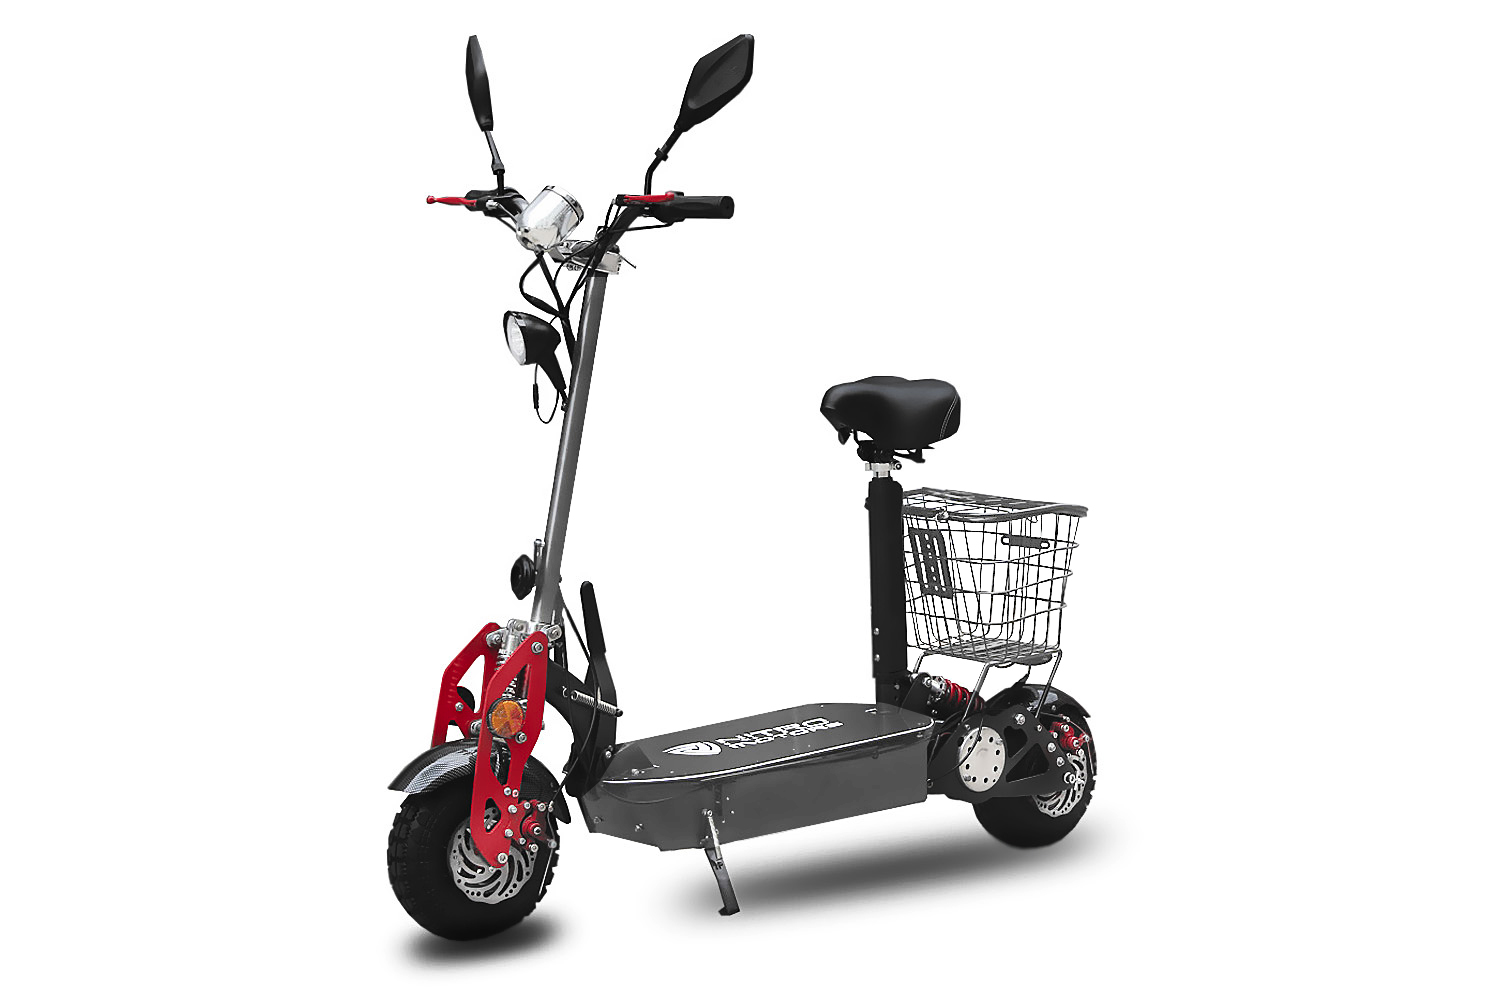 elektro scooter 36 volt 500 watt eec twister motocross. Black Bedroom Furniture Sets. Home Design Ideas